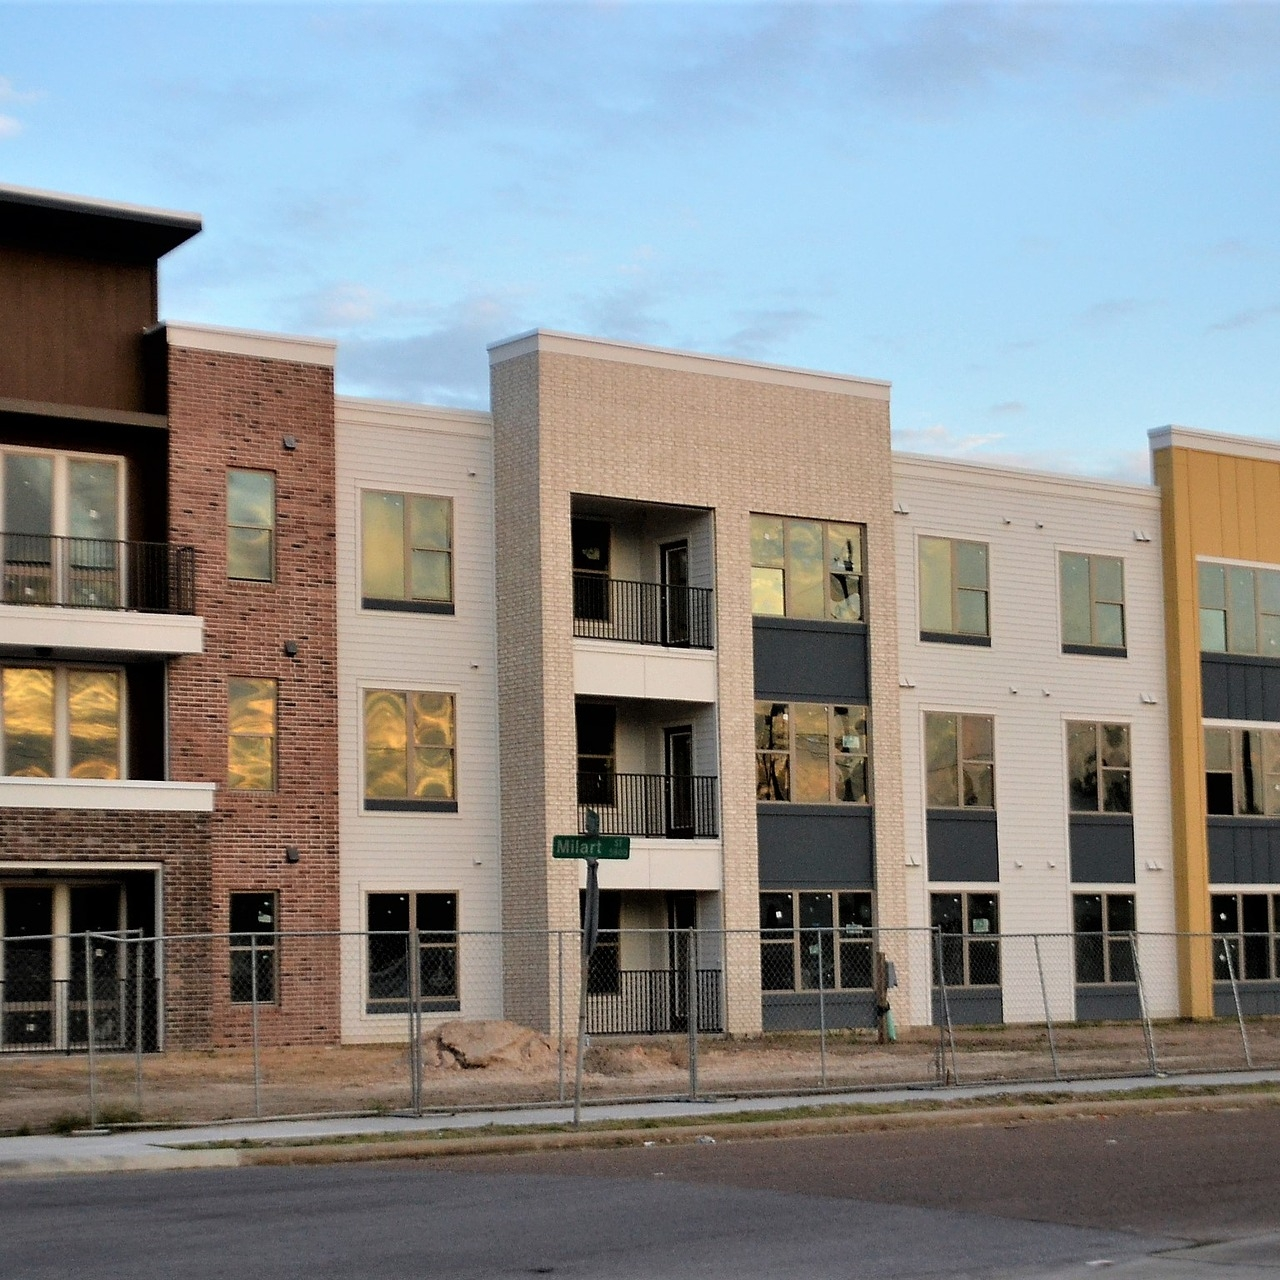 AFFORDABLE Housing - We manage 9 apartment complexes with more than 300 units - six of which are for individuals and families, and three of which are for seniors. All rents are below market rate, making the apartments very affordable.